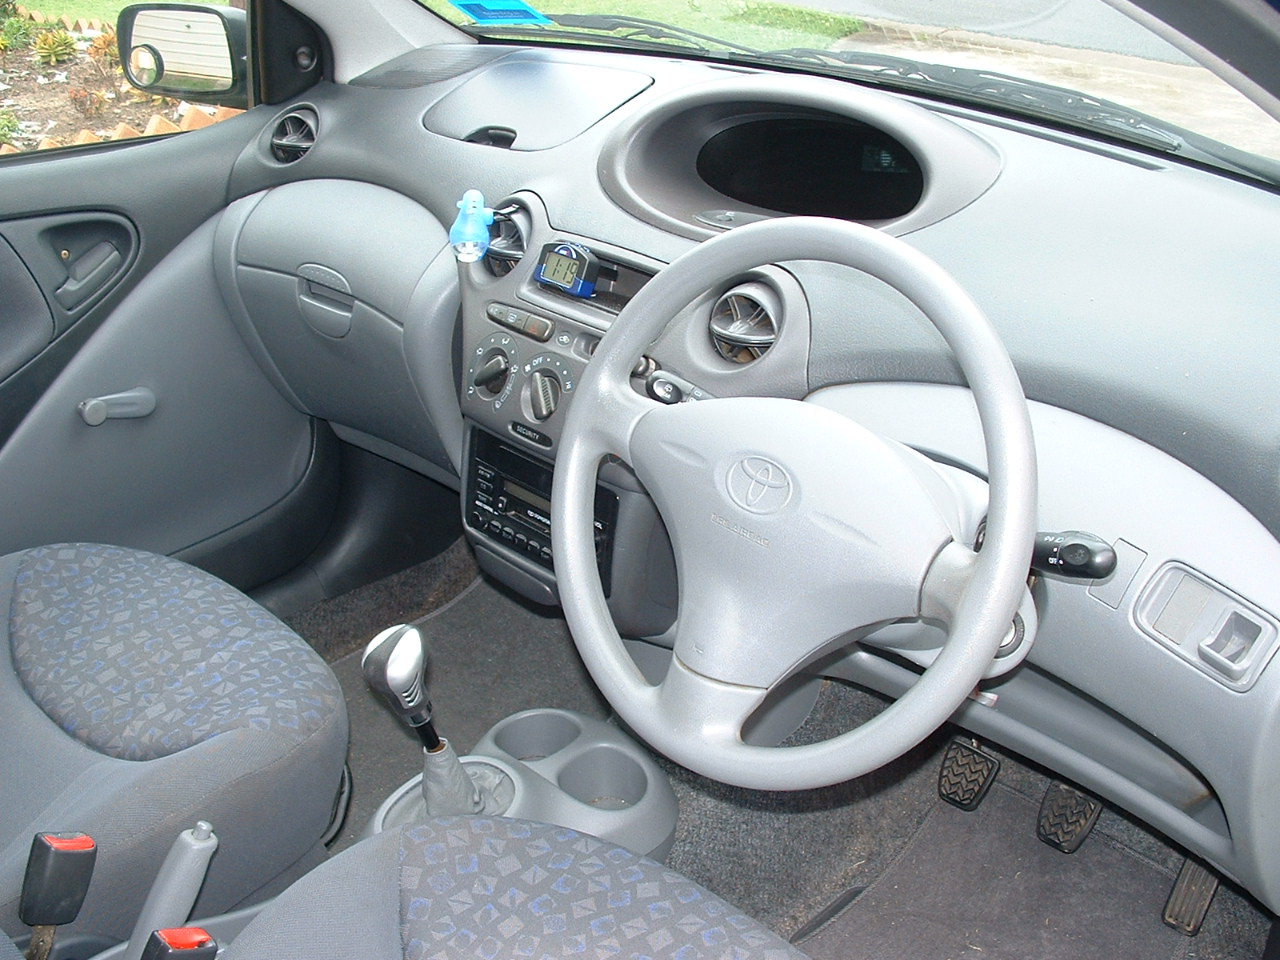 Toyota Echo 1999 - 2005 Coupe #7